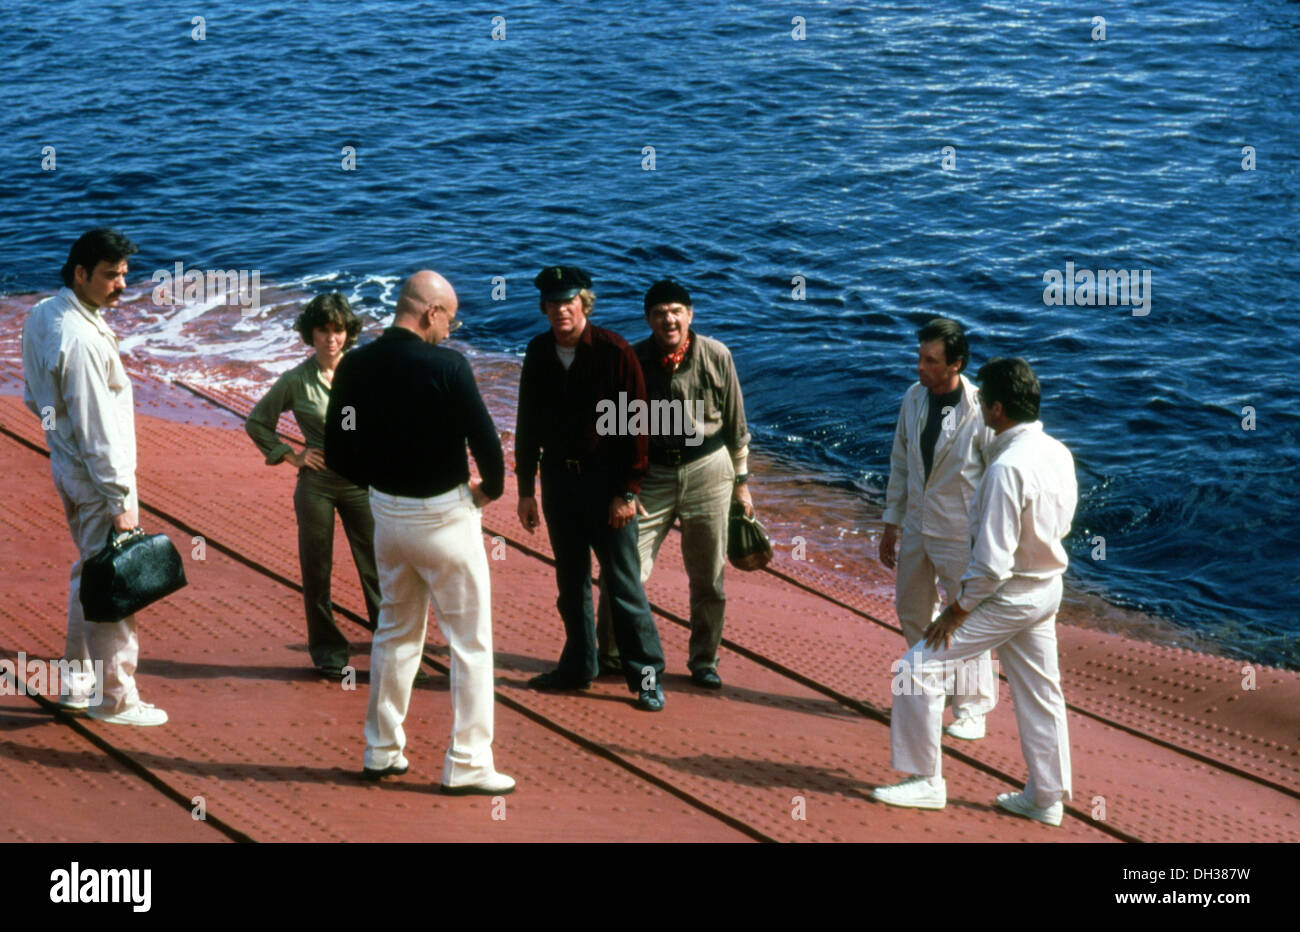 BEYOND THE POSEIDON ADVENTURE 1979) SALLY FIELD, TELLY SAVALAS, MICHAEL CAINE, KARL MALDEN, IRWIN ALLEN DIR) BYPD 019 - Stock Image